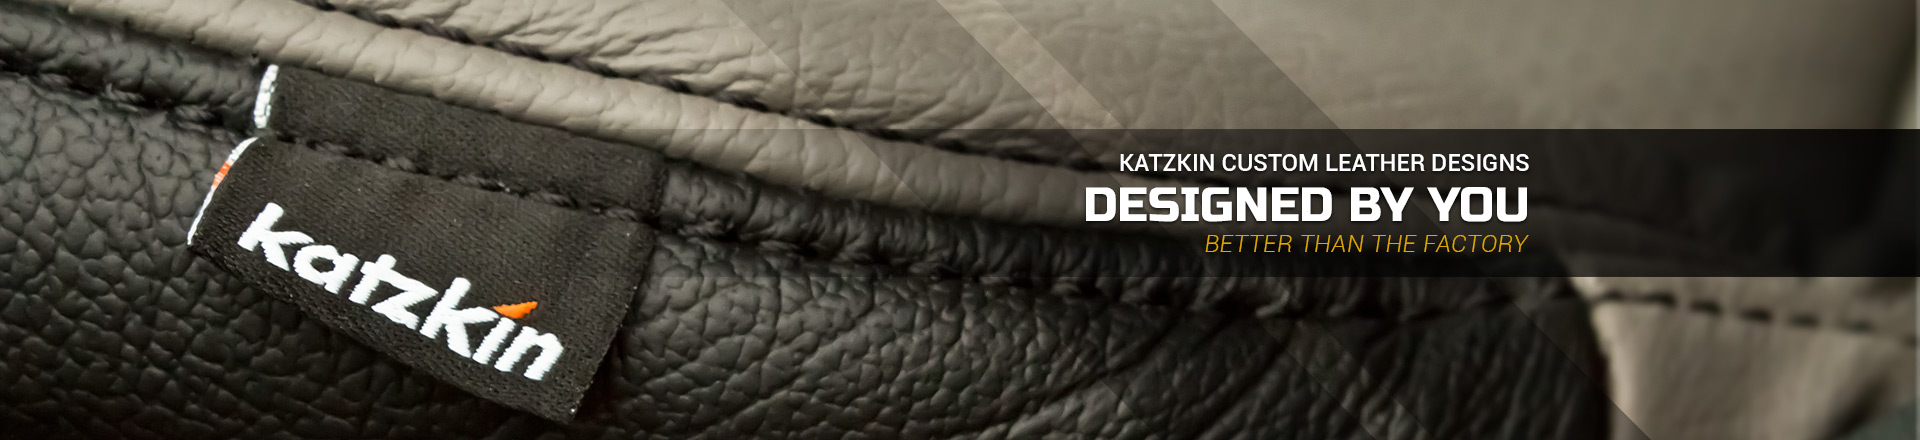 katzkin leather seat